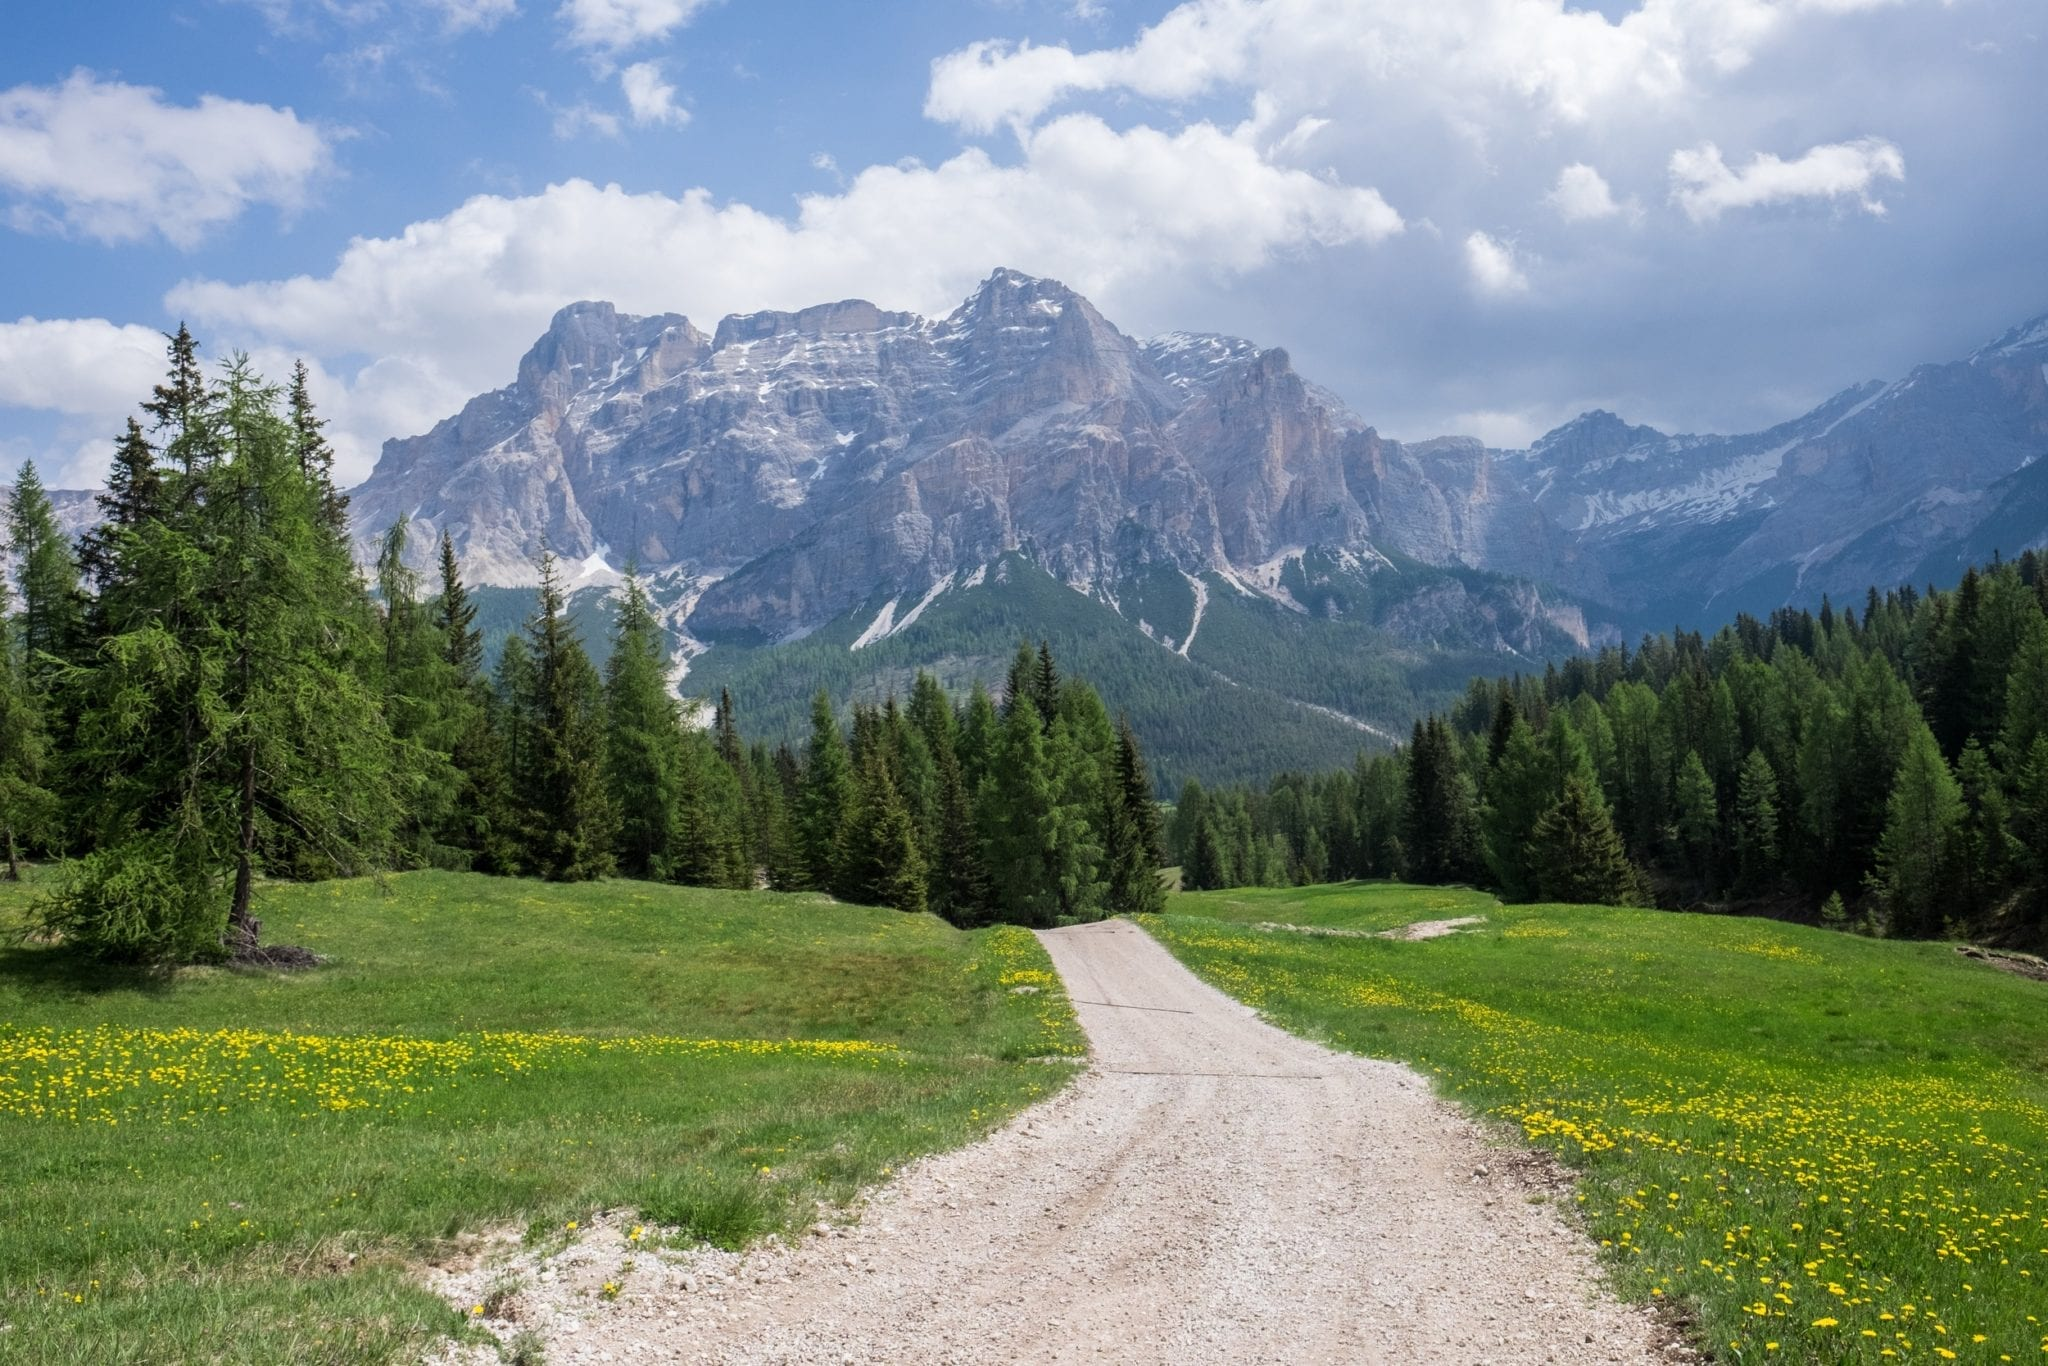 A worn path leads through the grass in the Dolomites. Ion the background are pine trees, huge blue and gray mountains, and a blue sky with puffy white clouds above all.